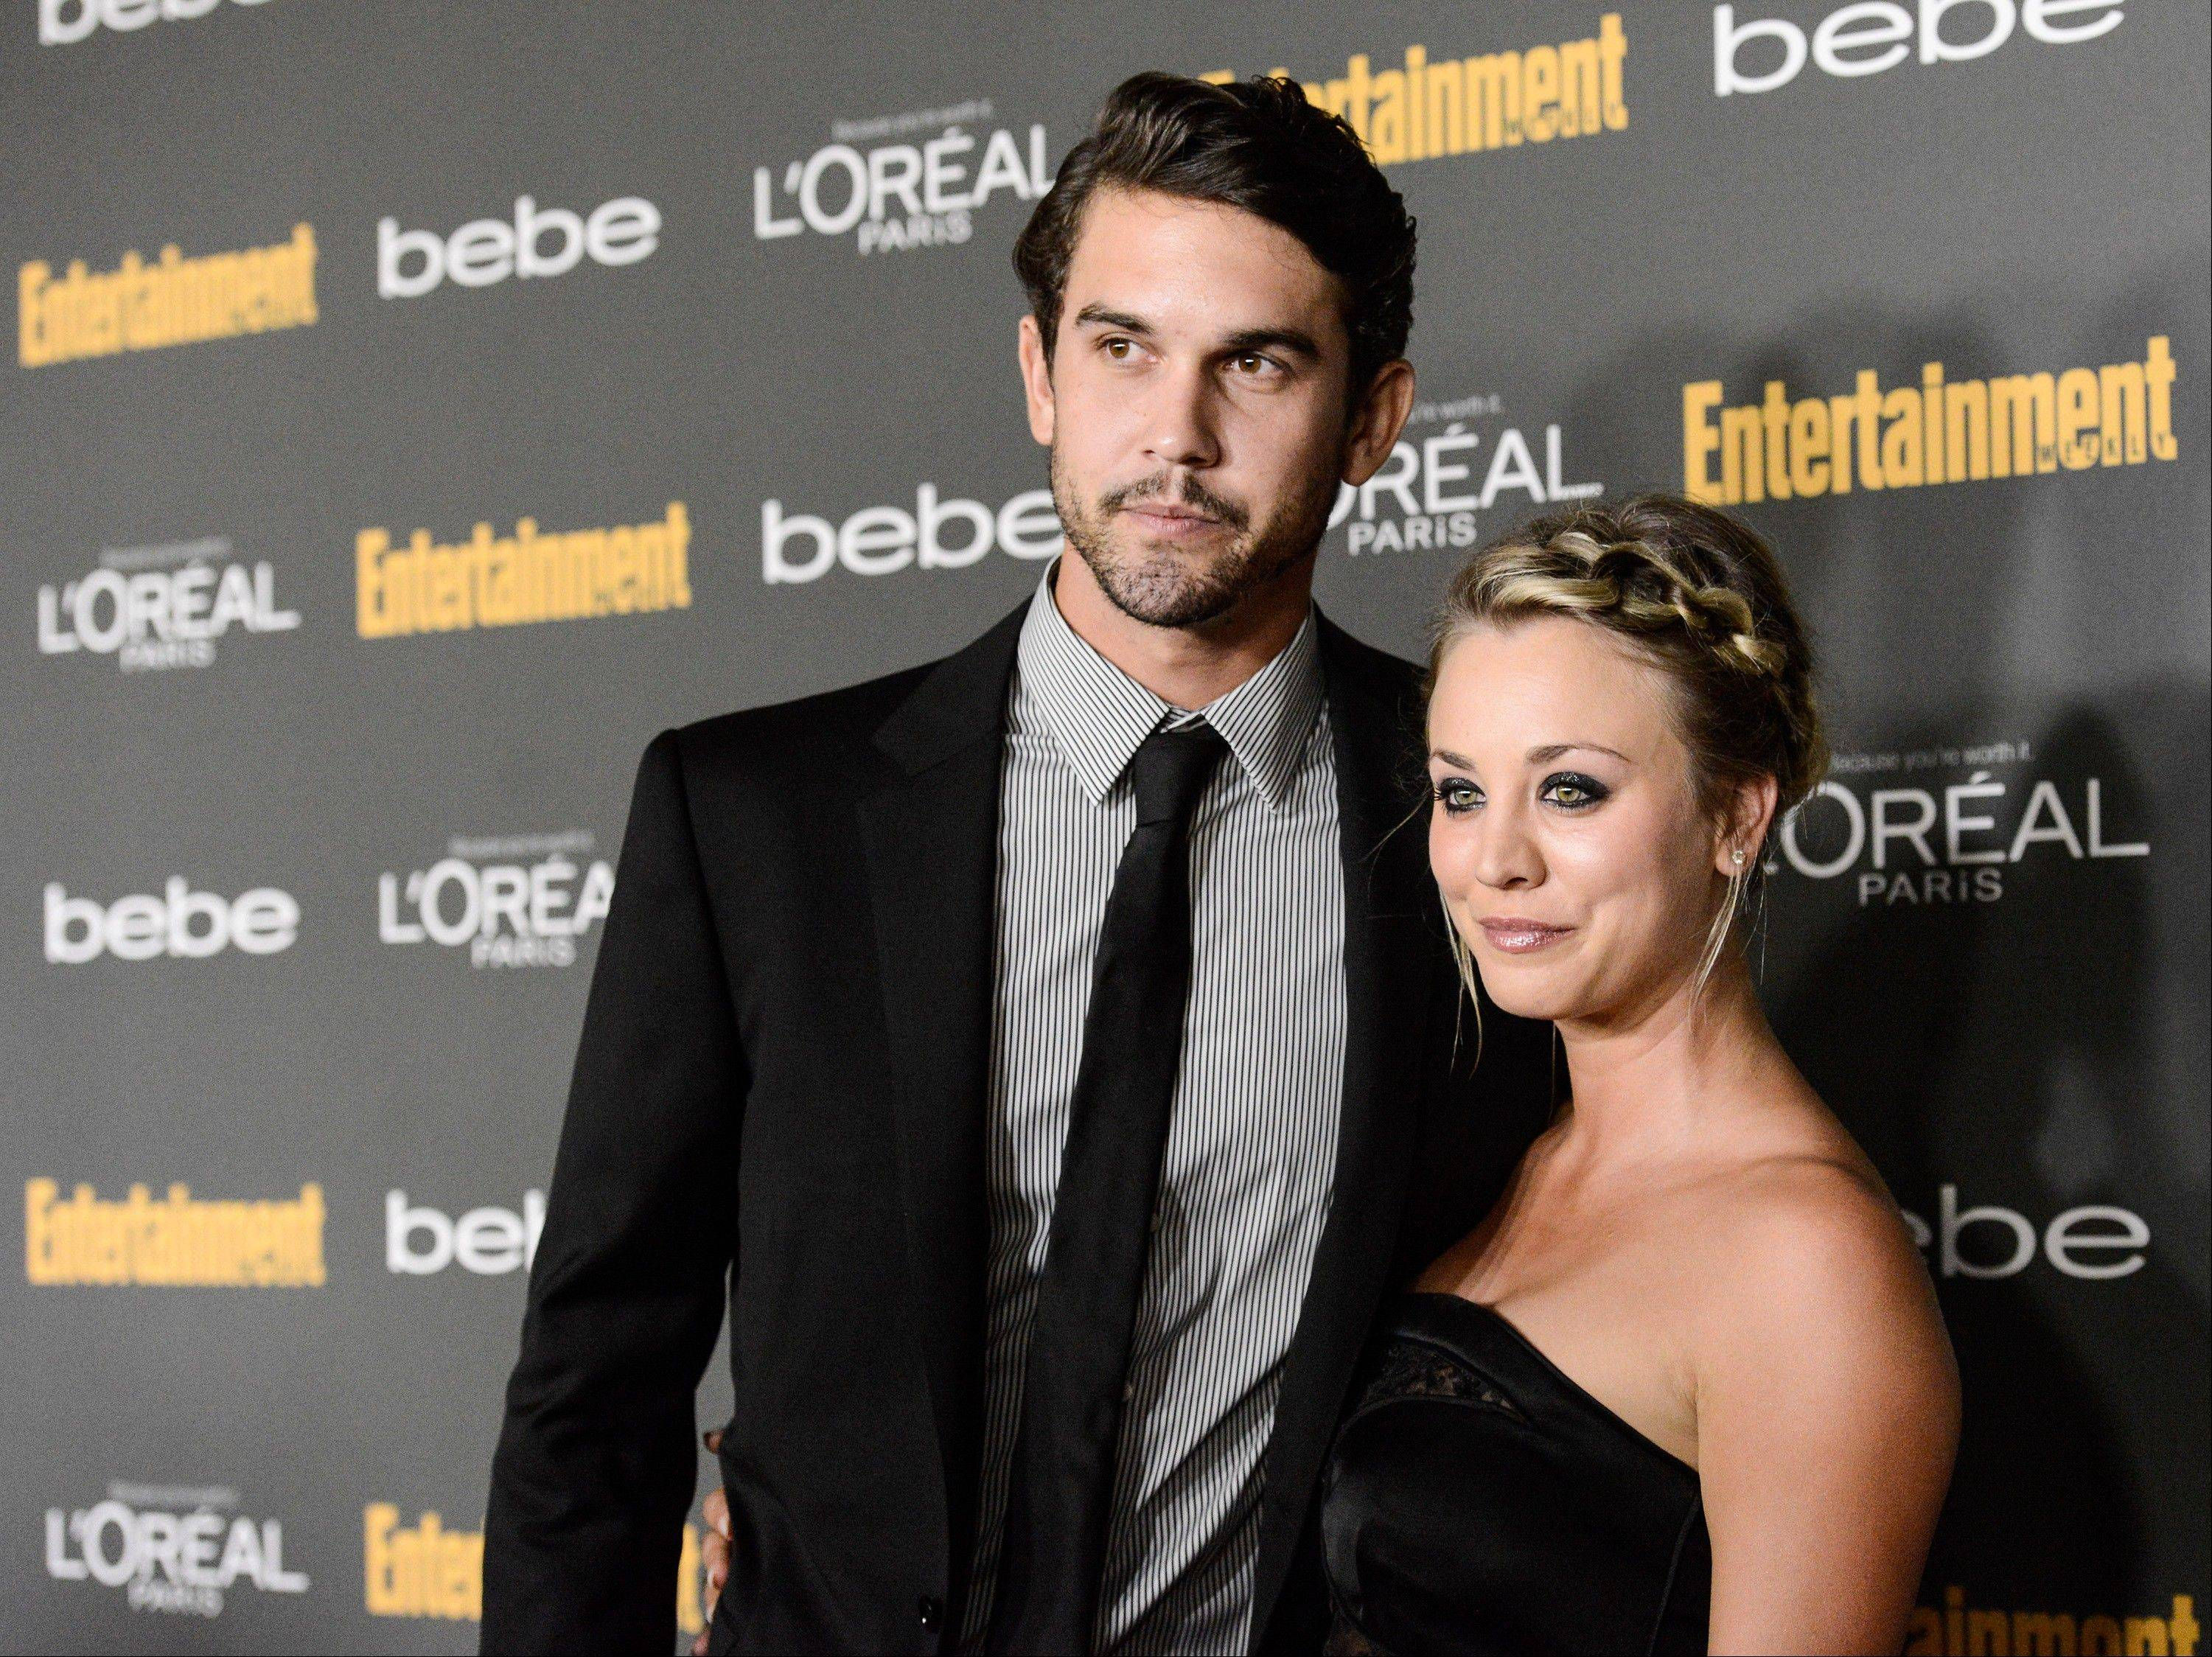 Actress Kaley Cuoco, right, and tennis pro Ryan Sweeting have become engaged after a quick courtship. The 27-year-old actress and 26-year-old Sweeting began dating about three months ago.